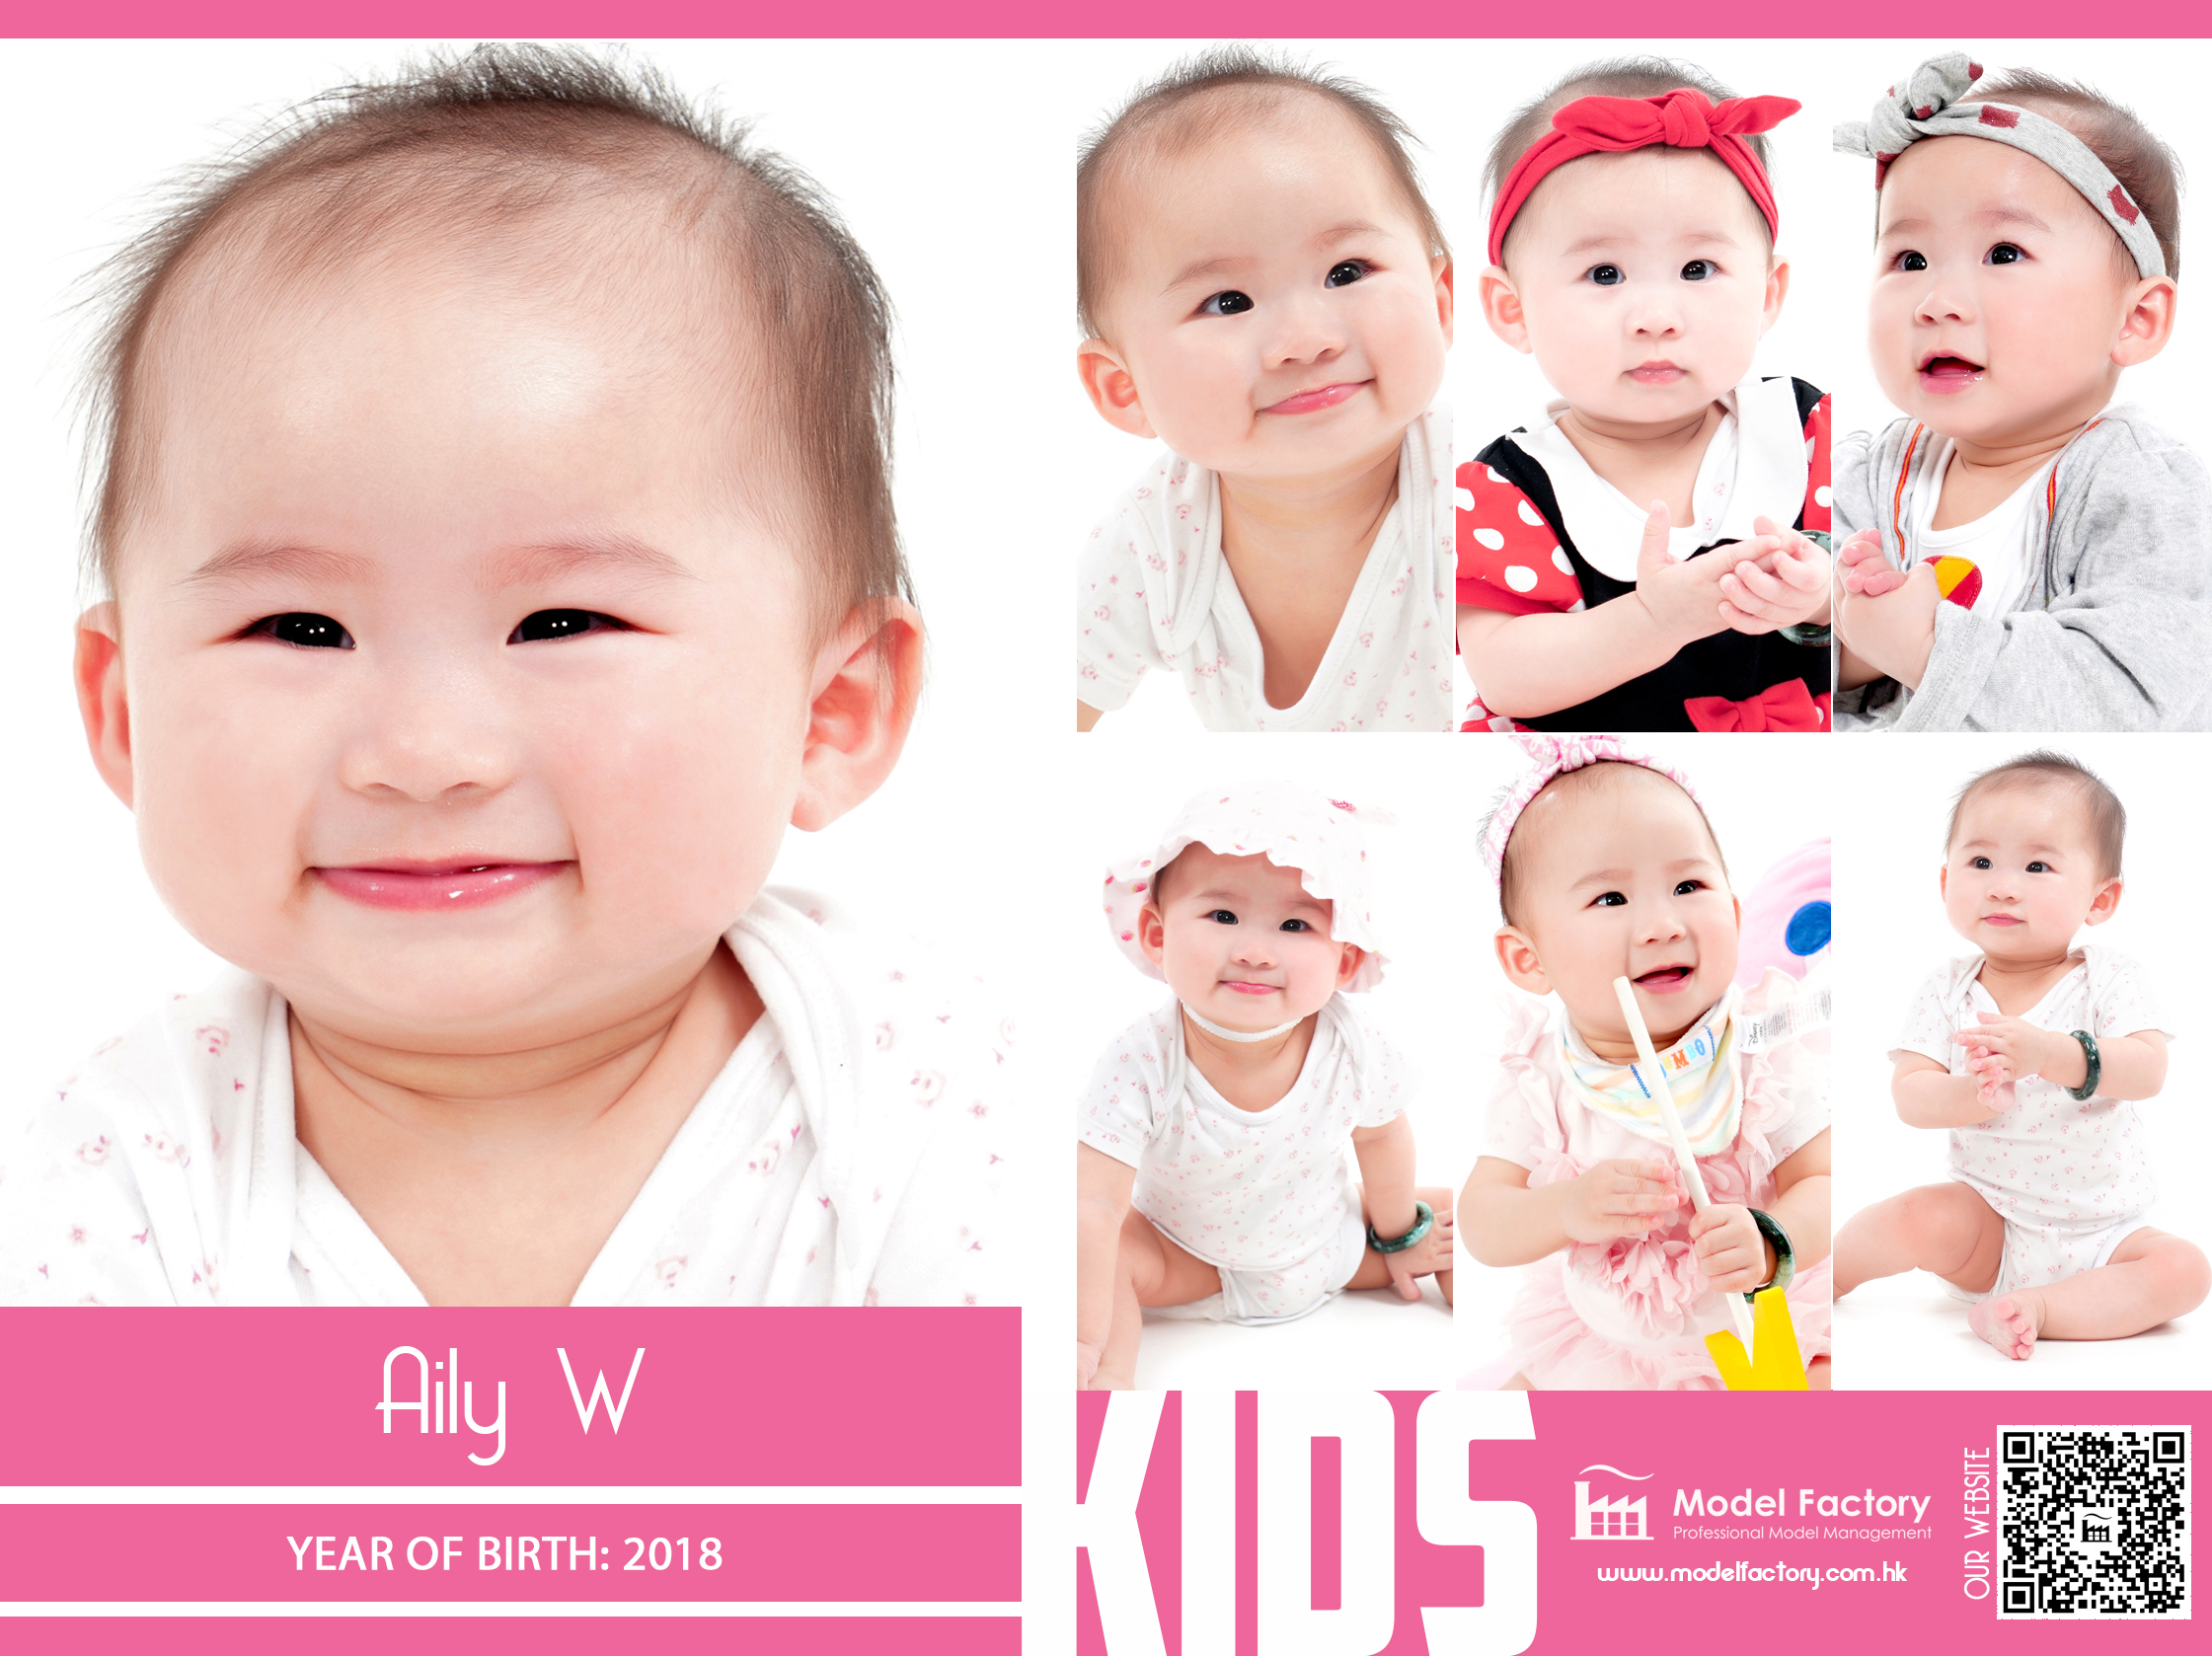 Model Factory Local Kids Model Aily W